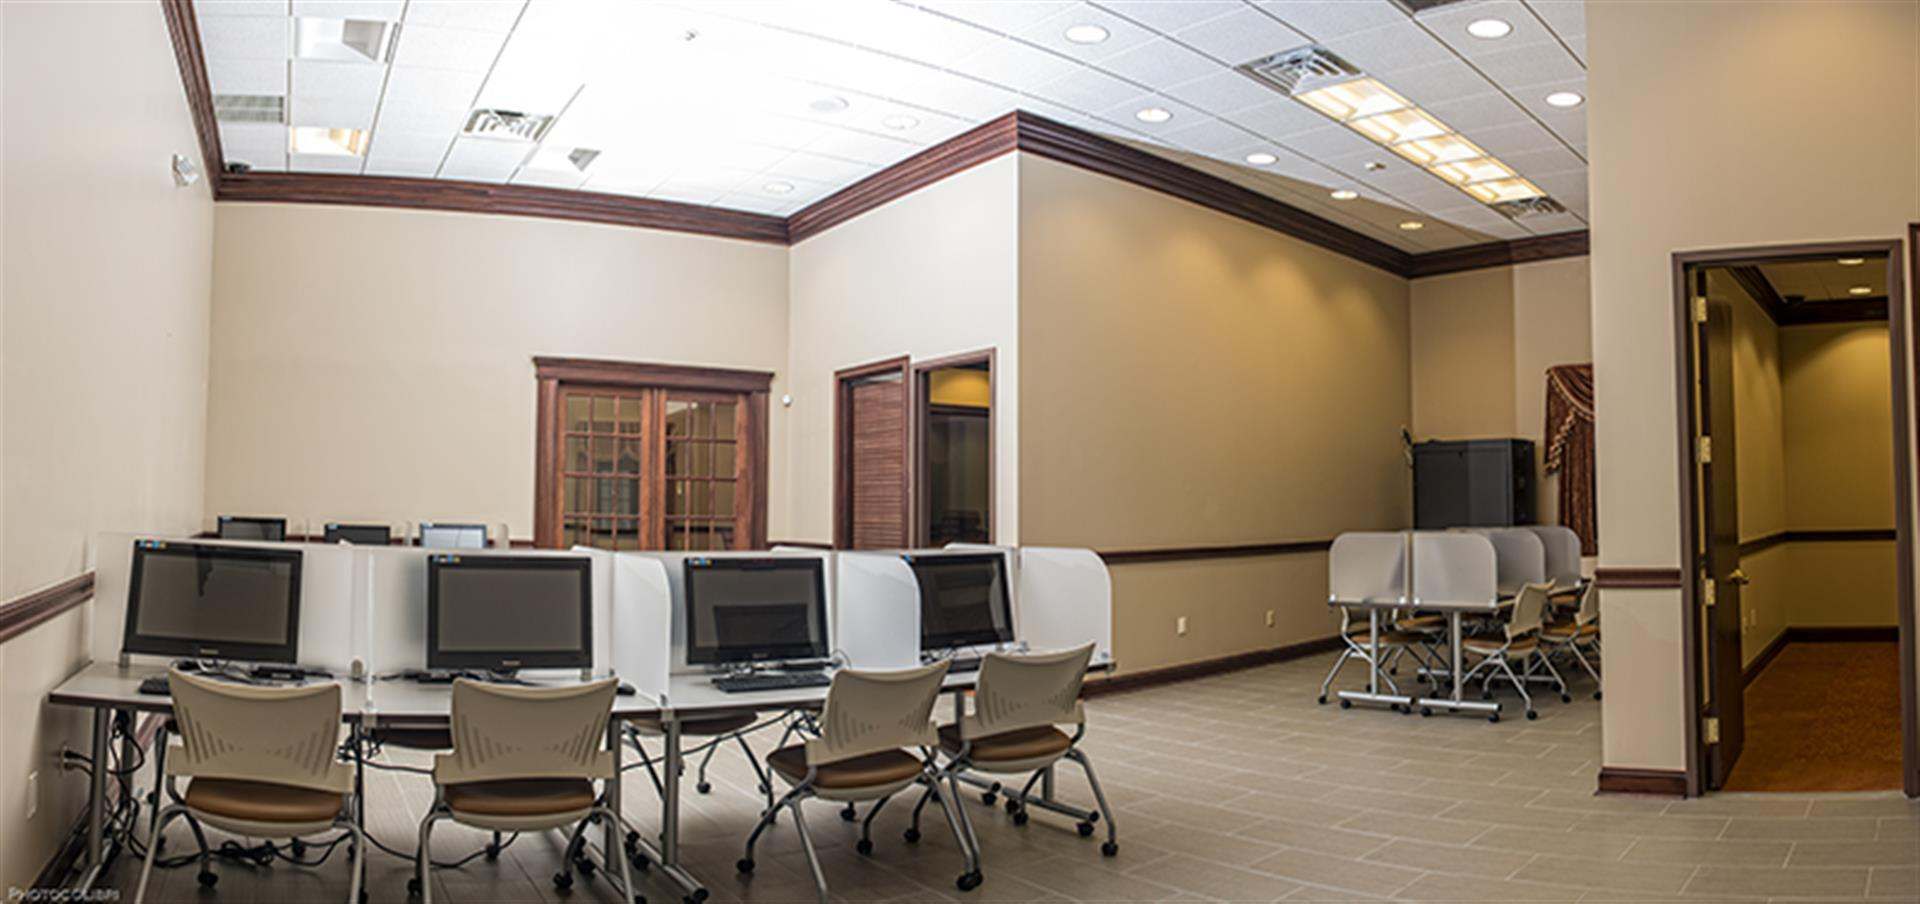 CEC Research - Central Training Room